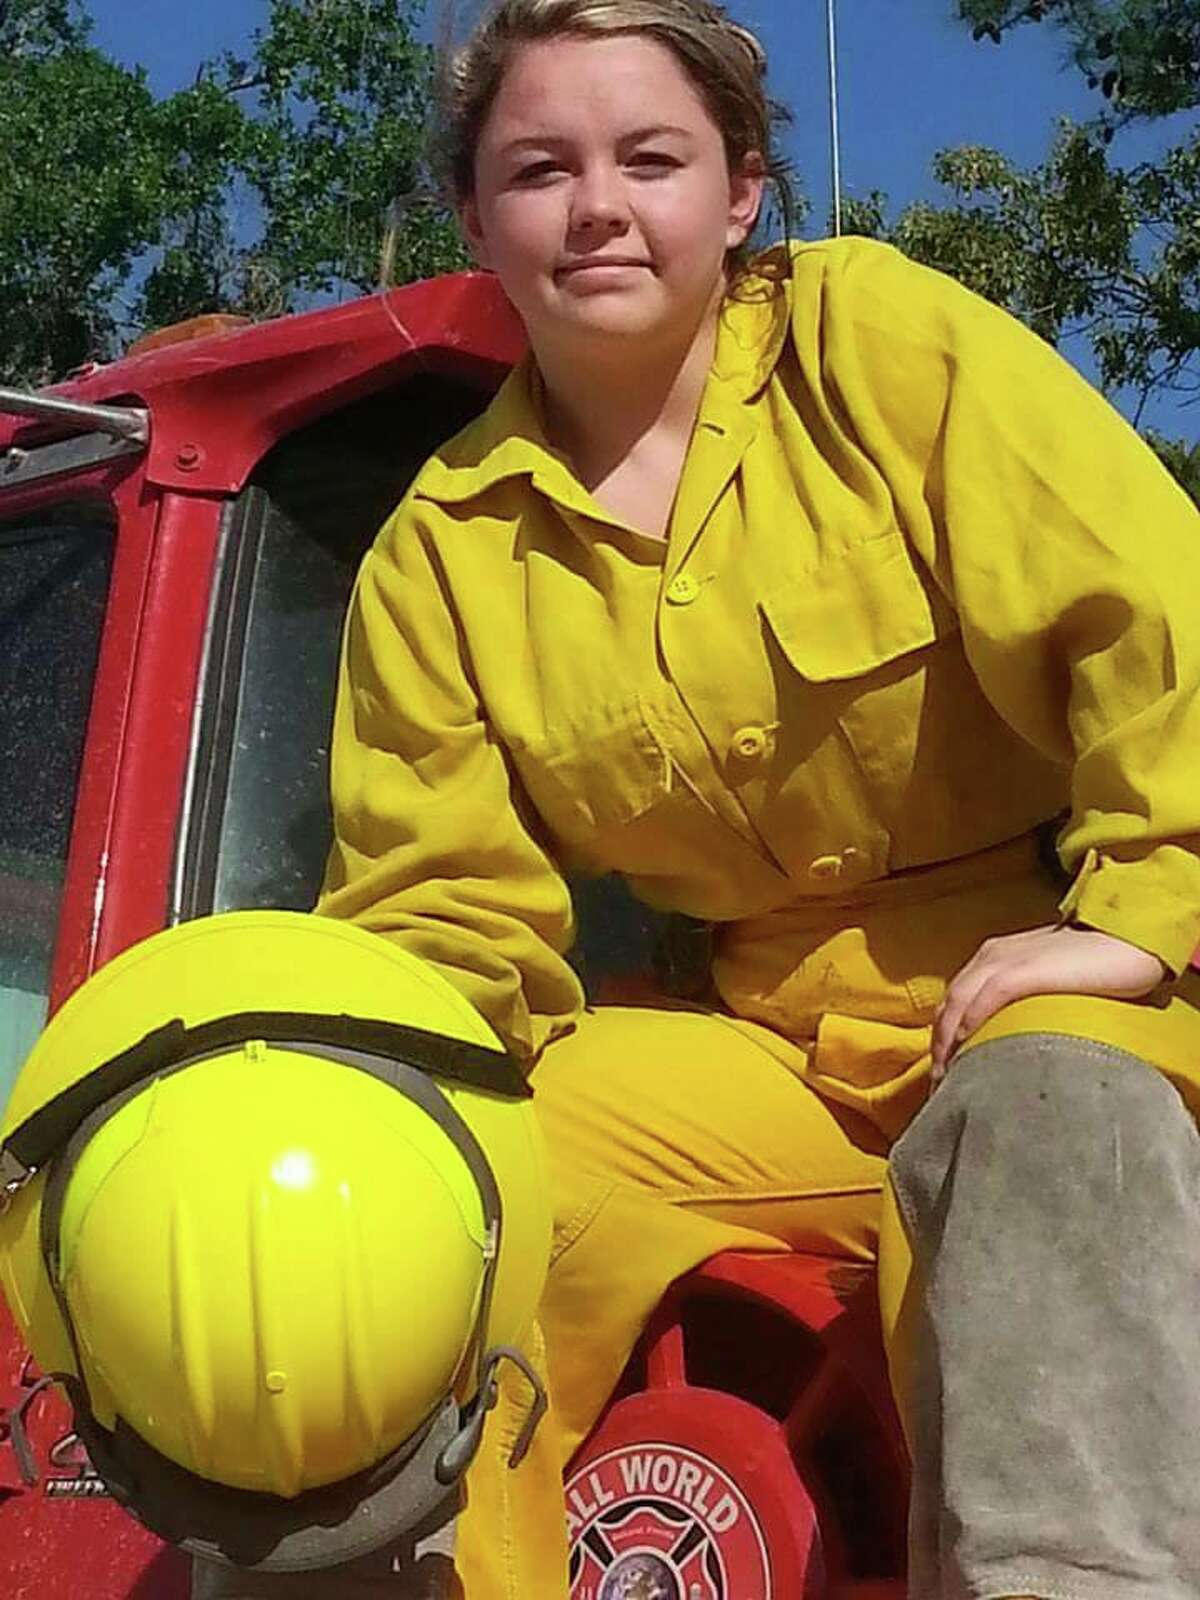 Harley Mullenix began as a junior firefighter five years ago when she was 15. She died Saturday in a car crash in Plantersville.